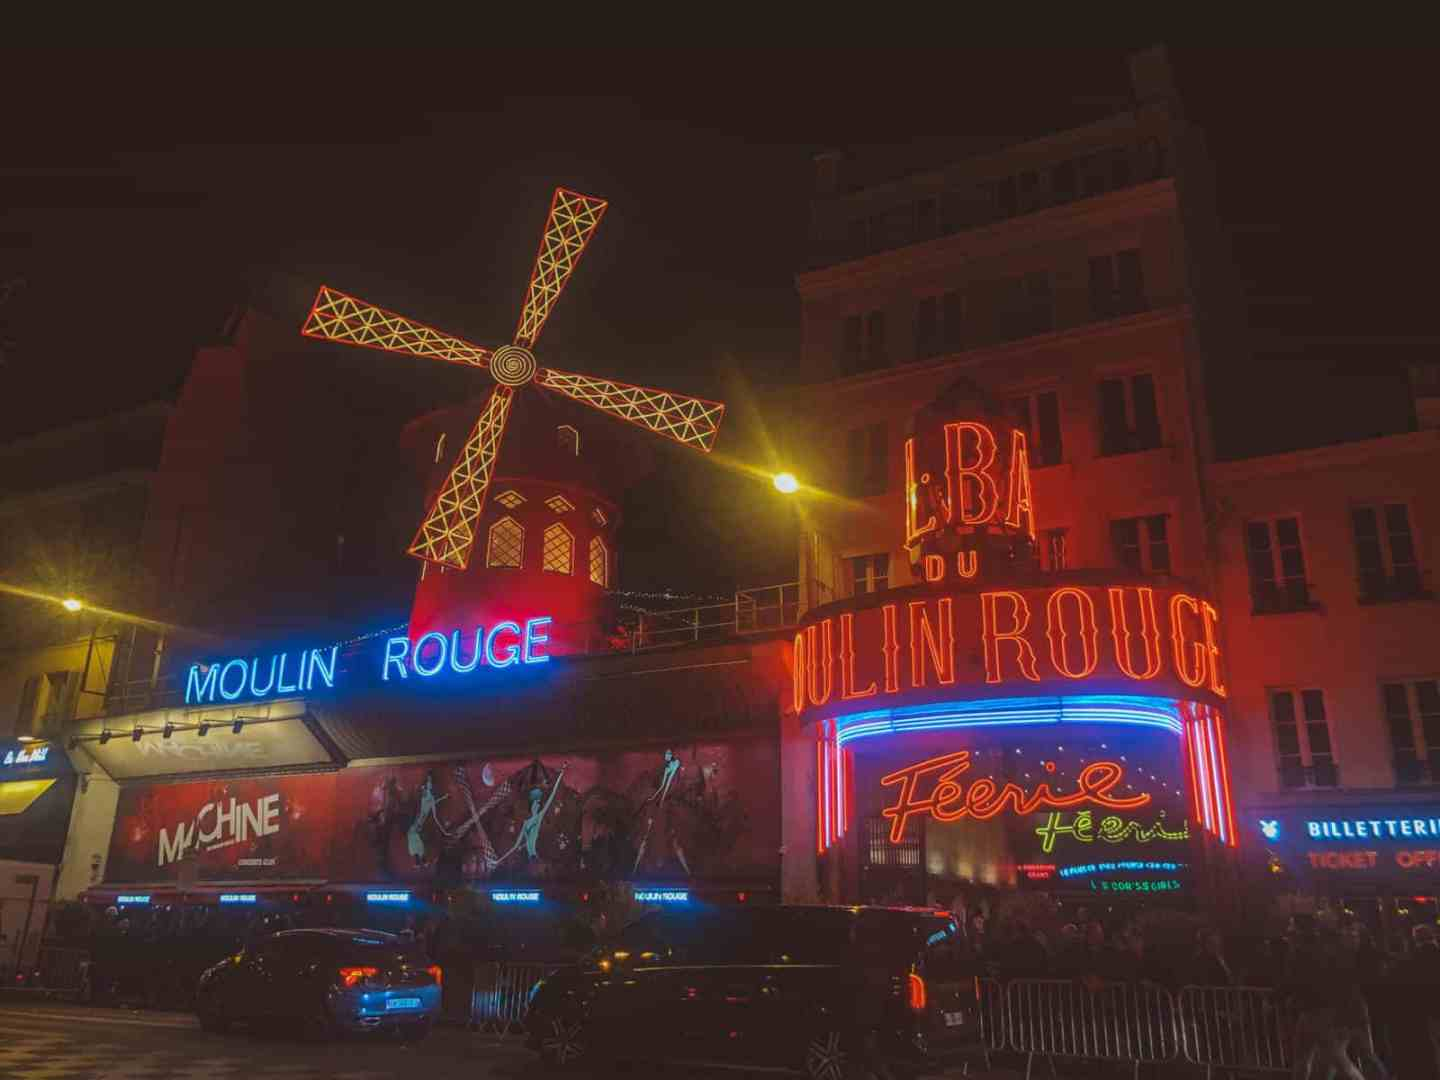 The moulin rouge at night time